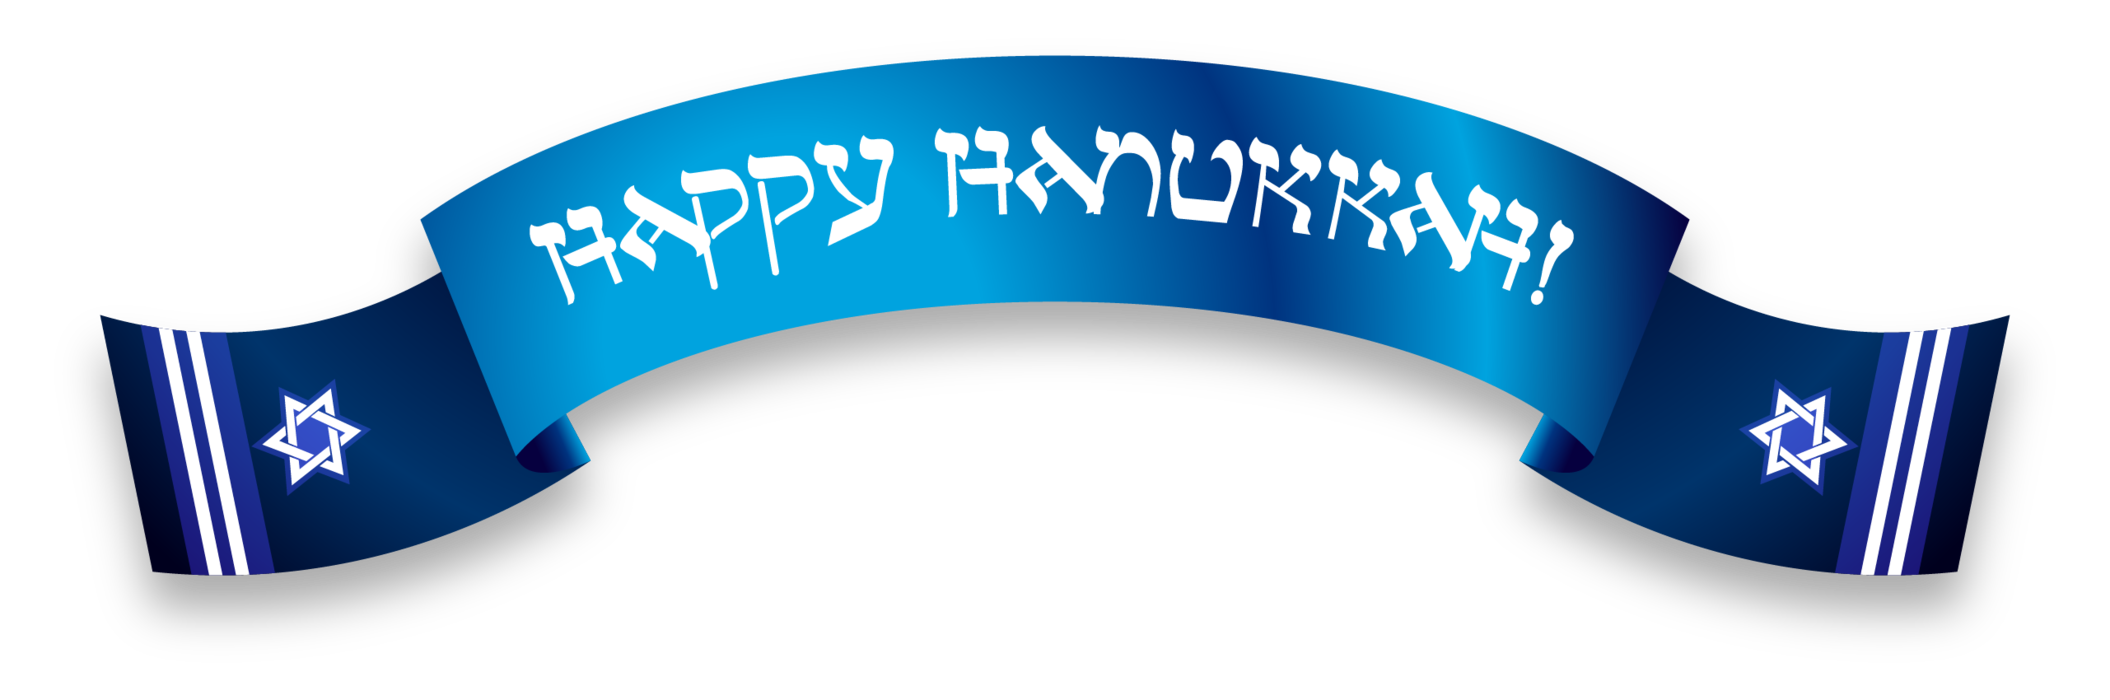 Happy hanukkah png. Banner